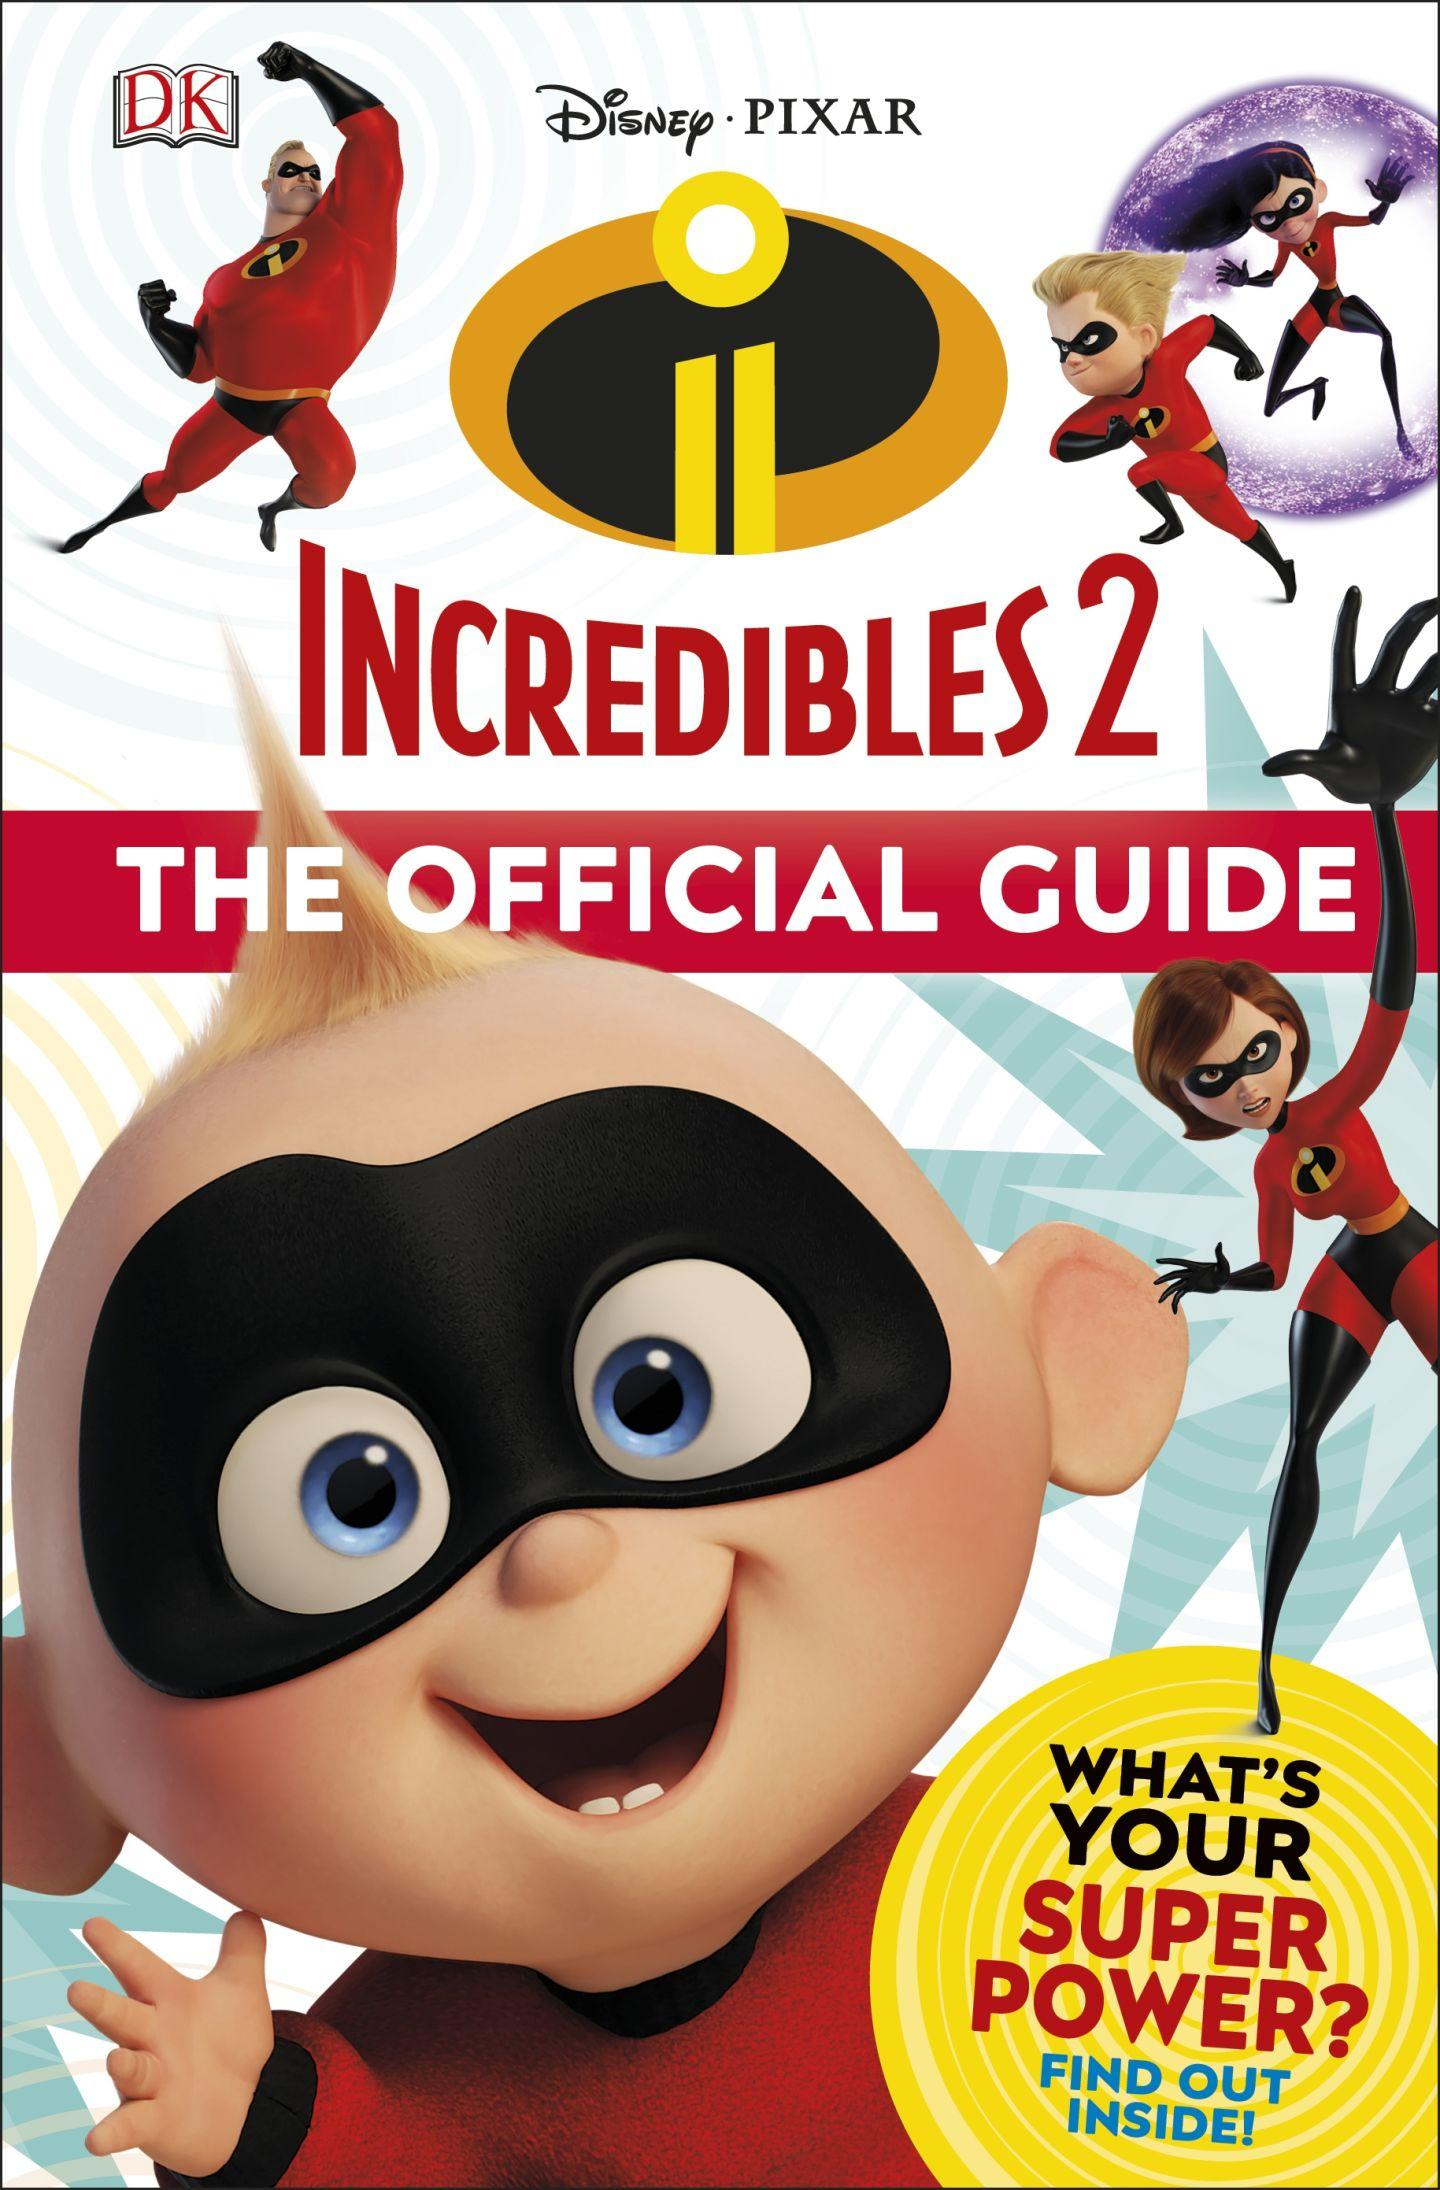 Disney Pixar The Incredibles 2 The Official Guide